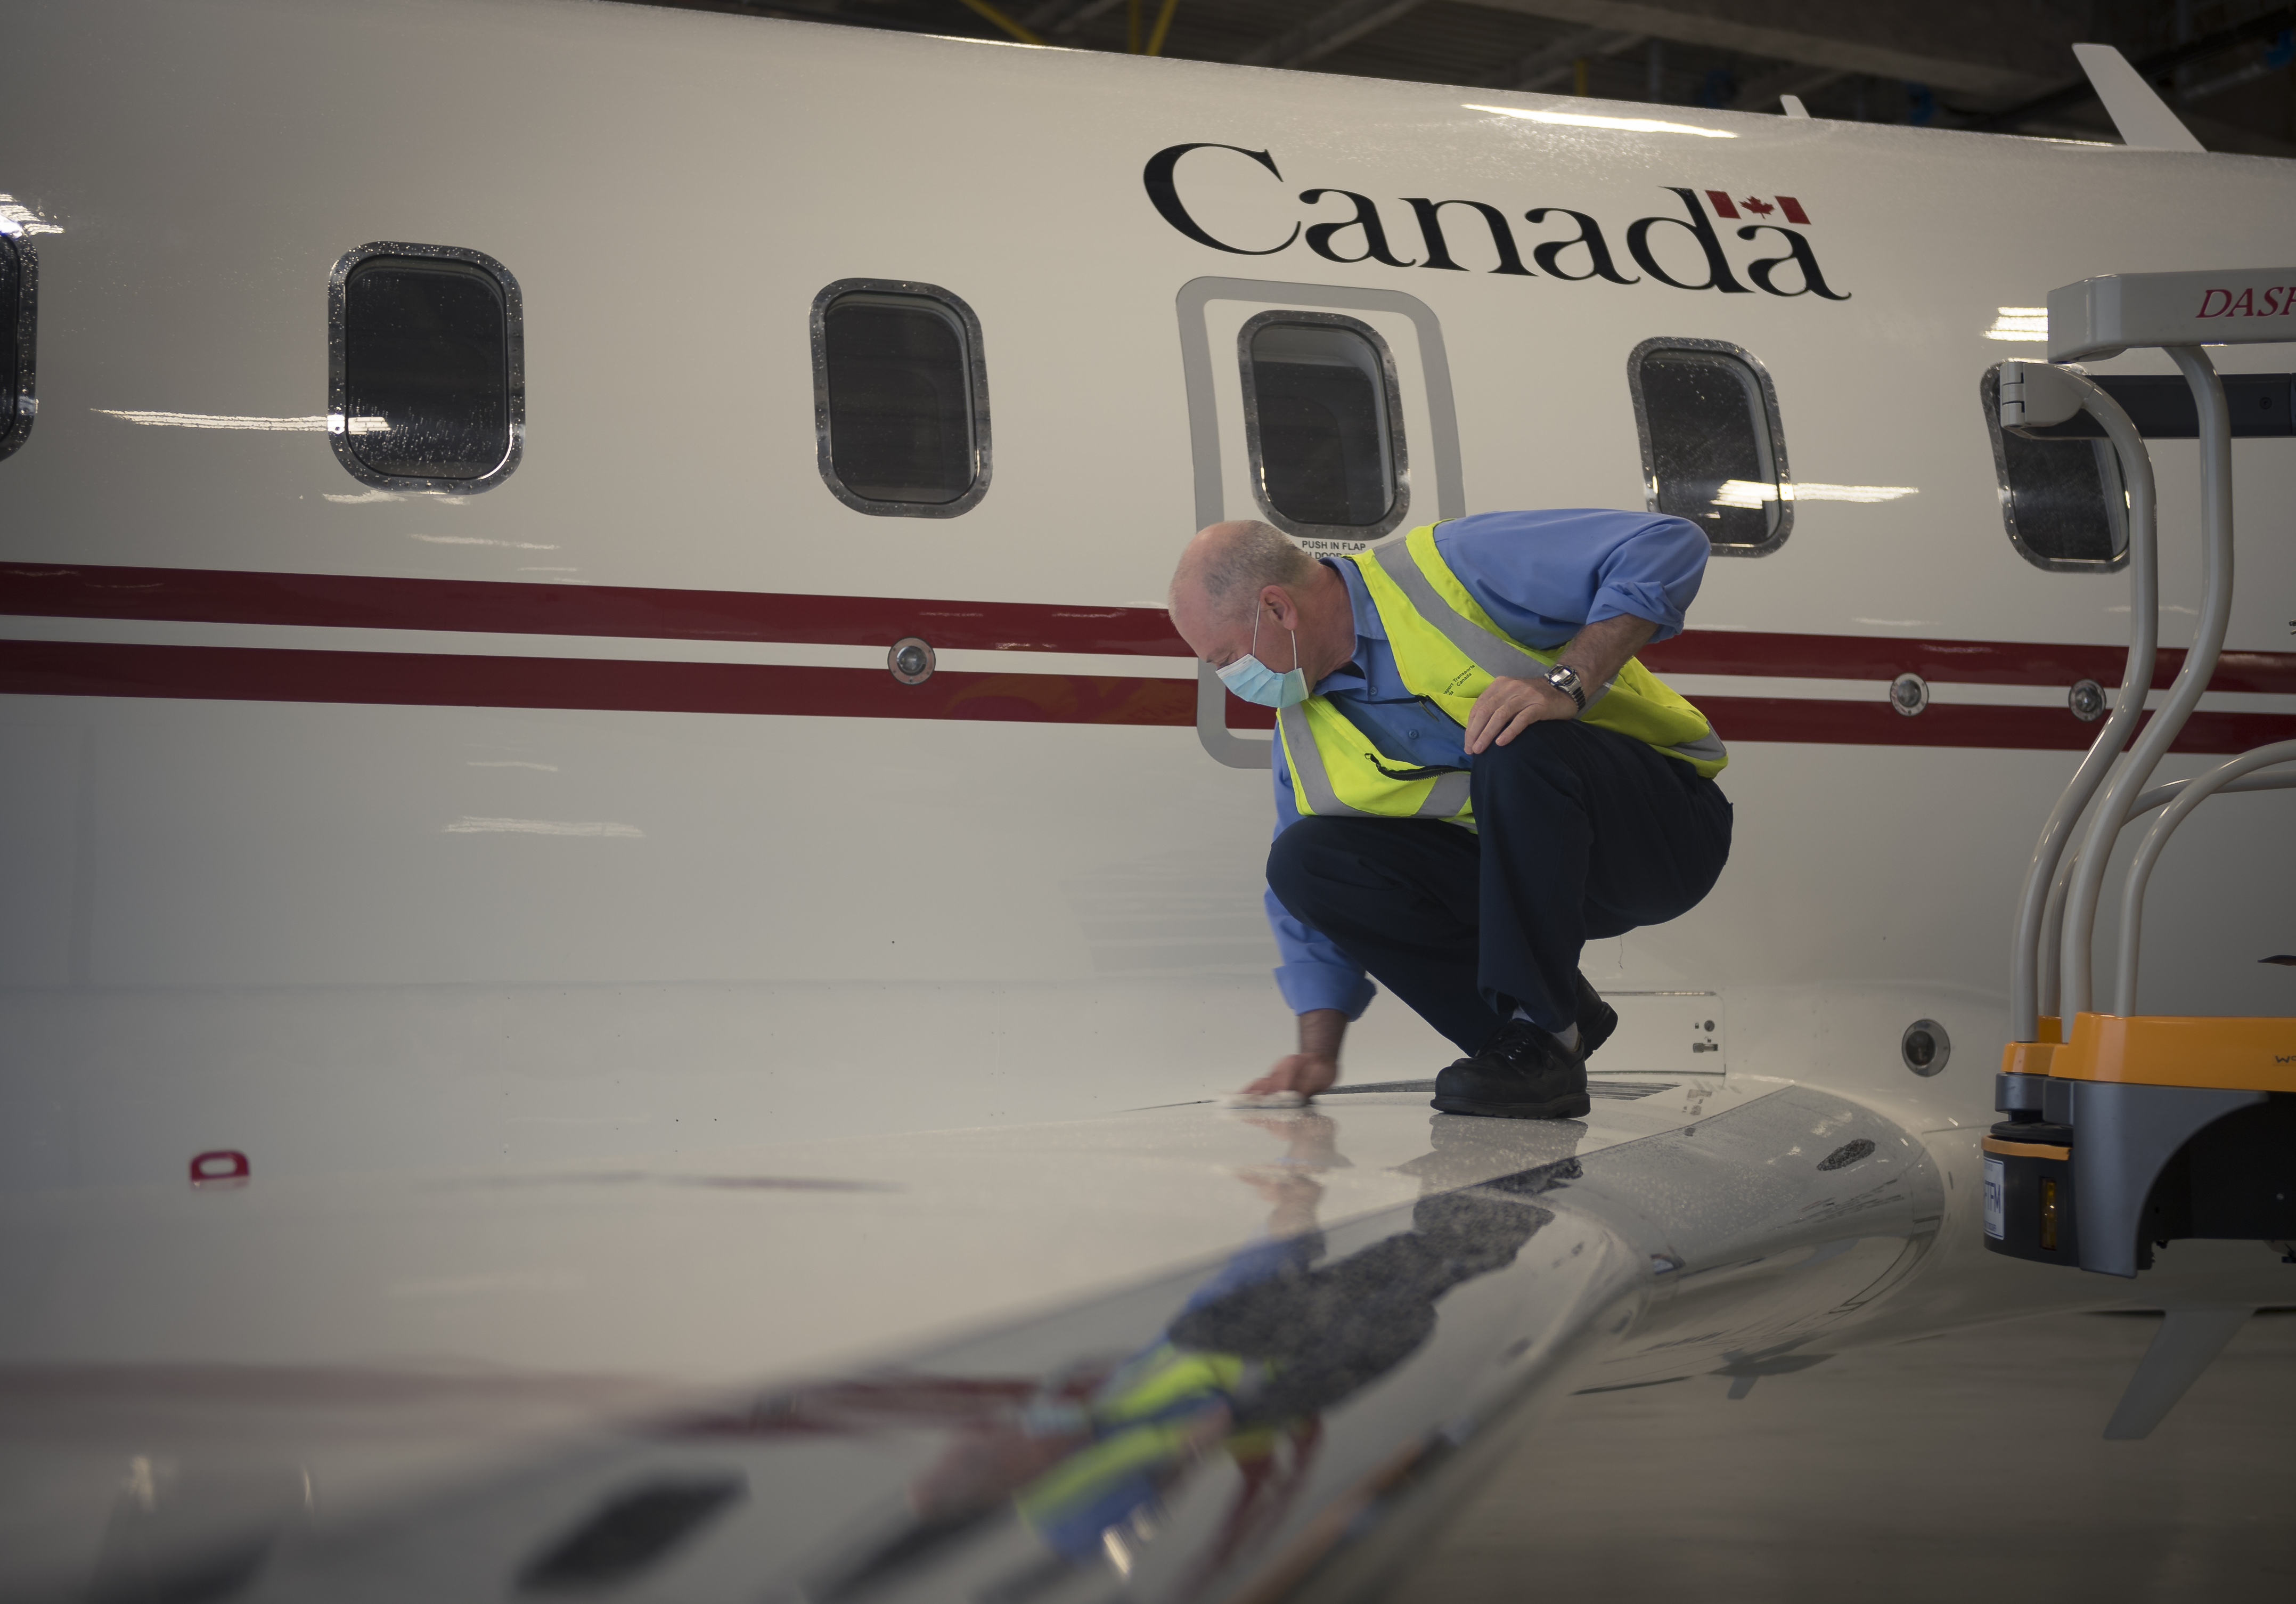 A Transport Canada technician prepares the new CC-144 Challenger Aircraft received at 412 Squadron located in Ottawa, Ontario on 27 August 2020. PHOTO: Corporal Desiree T. Bourdon